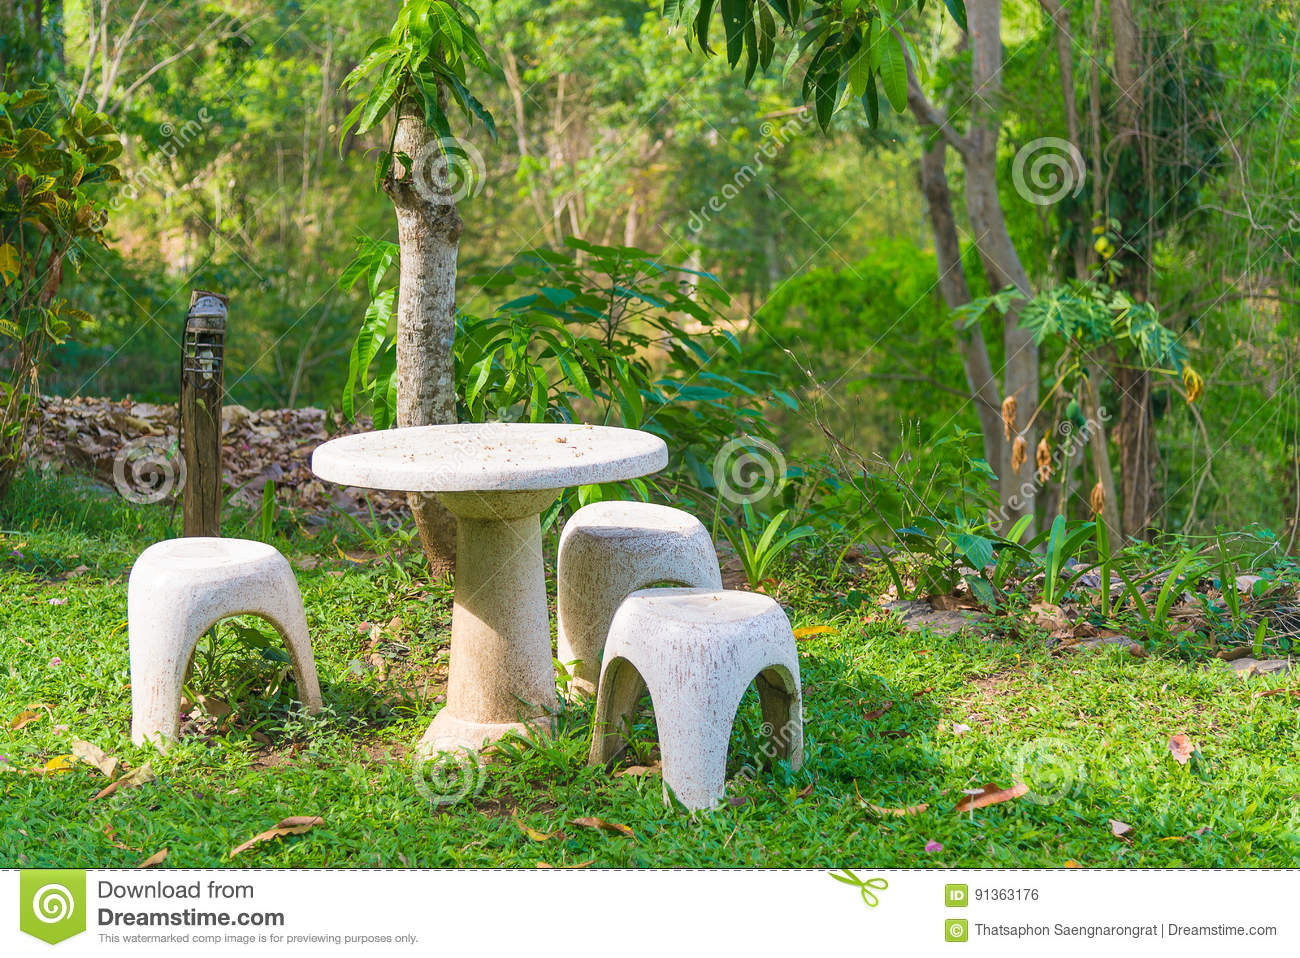 Garden Seat Of Stone Or Stone Table And Benches In The Garden. Stock Photo